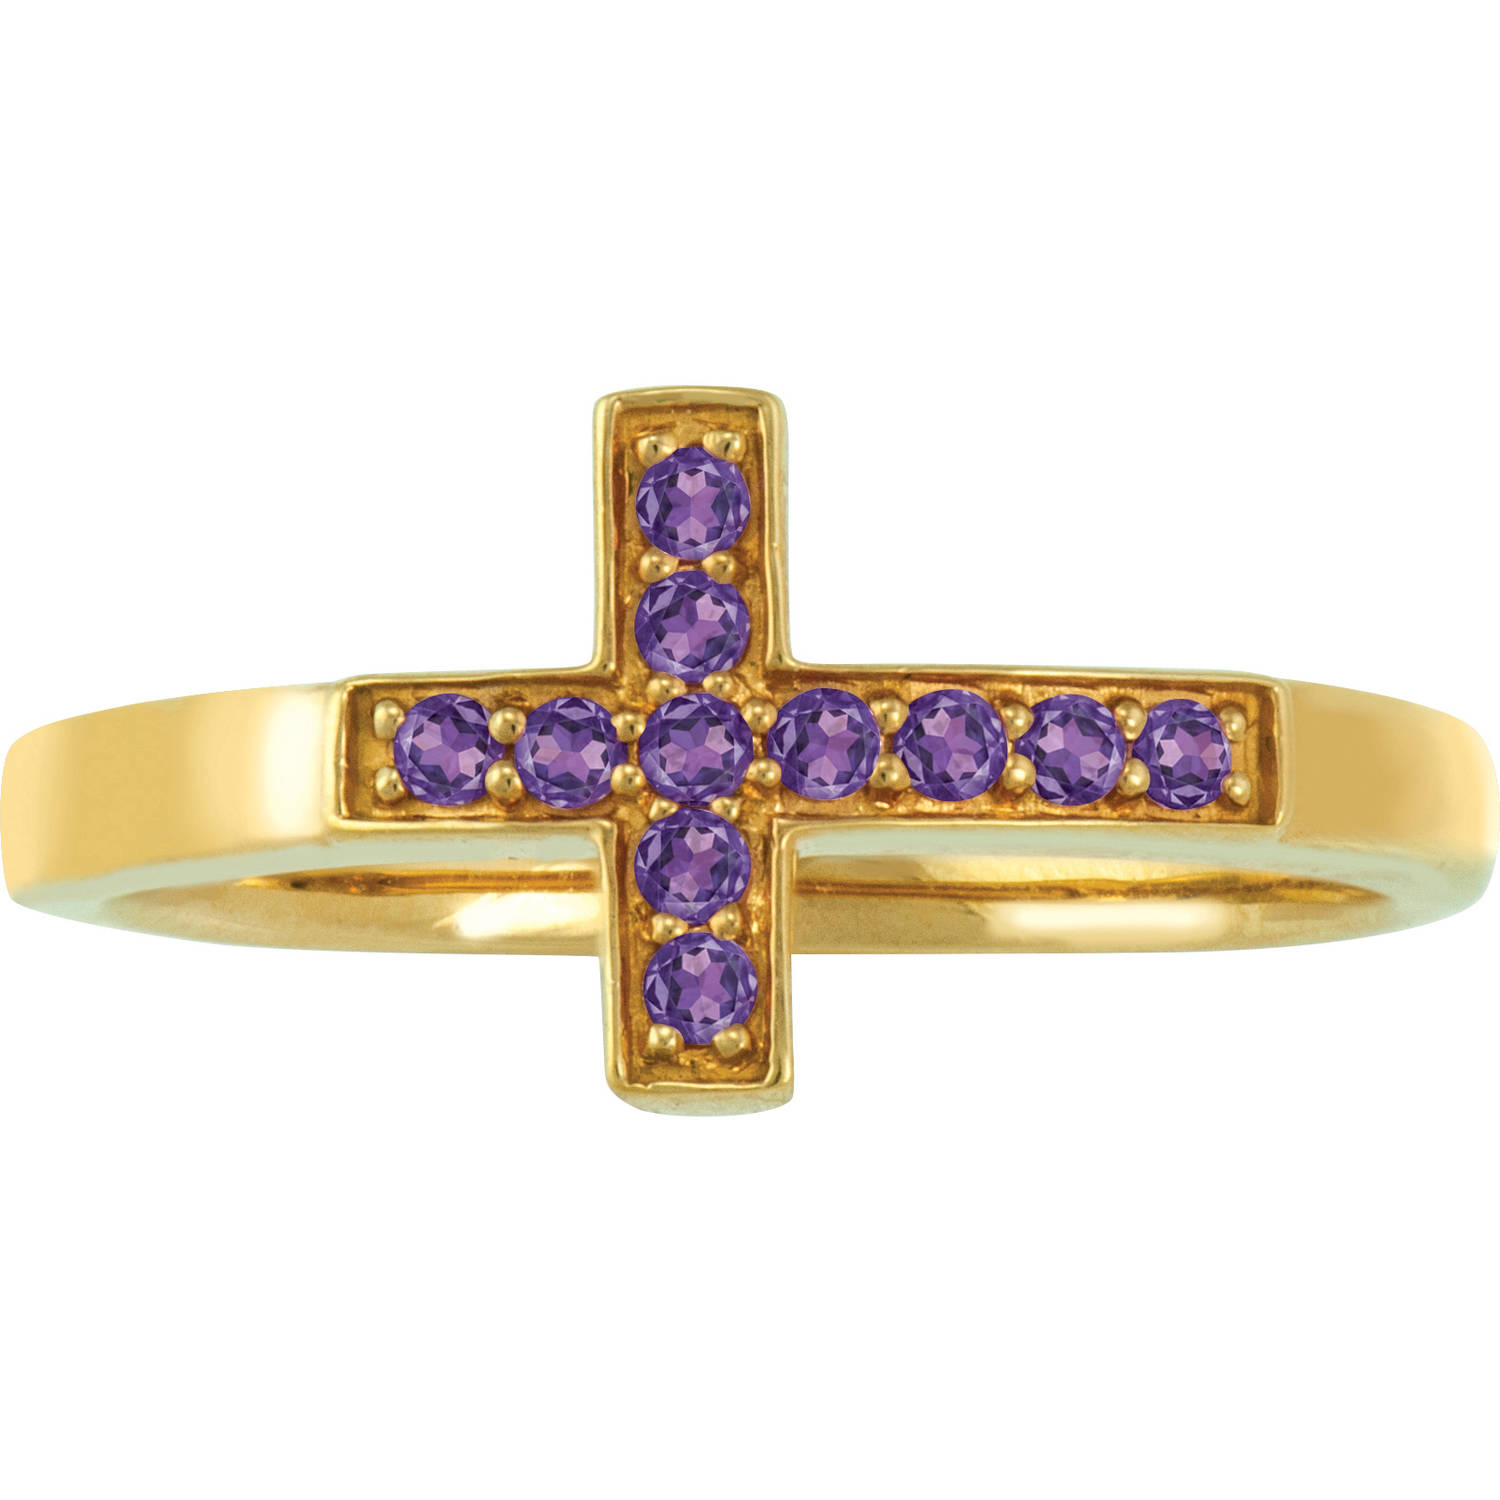 Keepsake Personalized Family Jewelry Sideways Cross Ring available in Sterling Silver, Gold over Silver, Yellow and White Gold